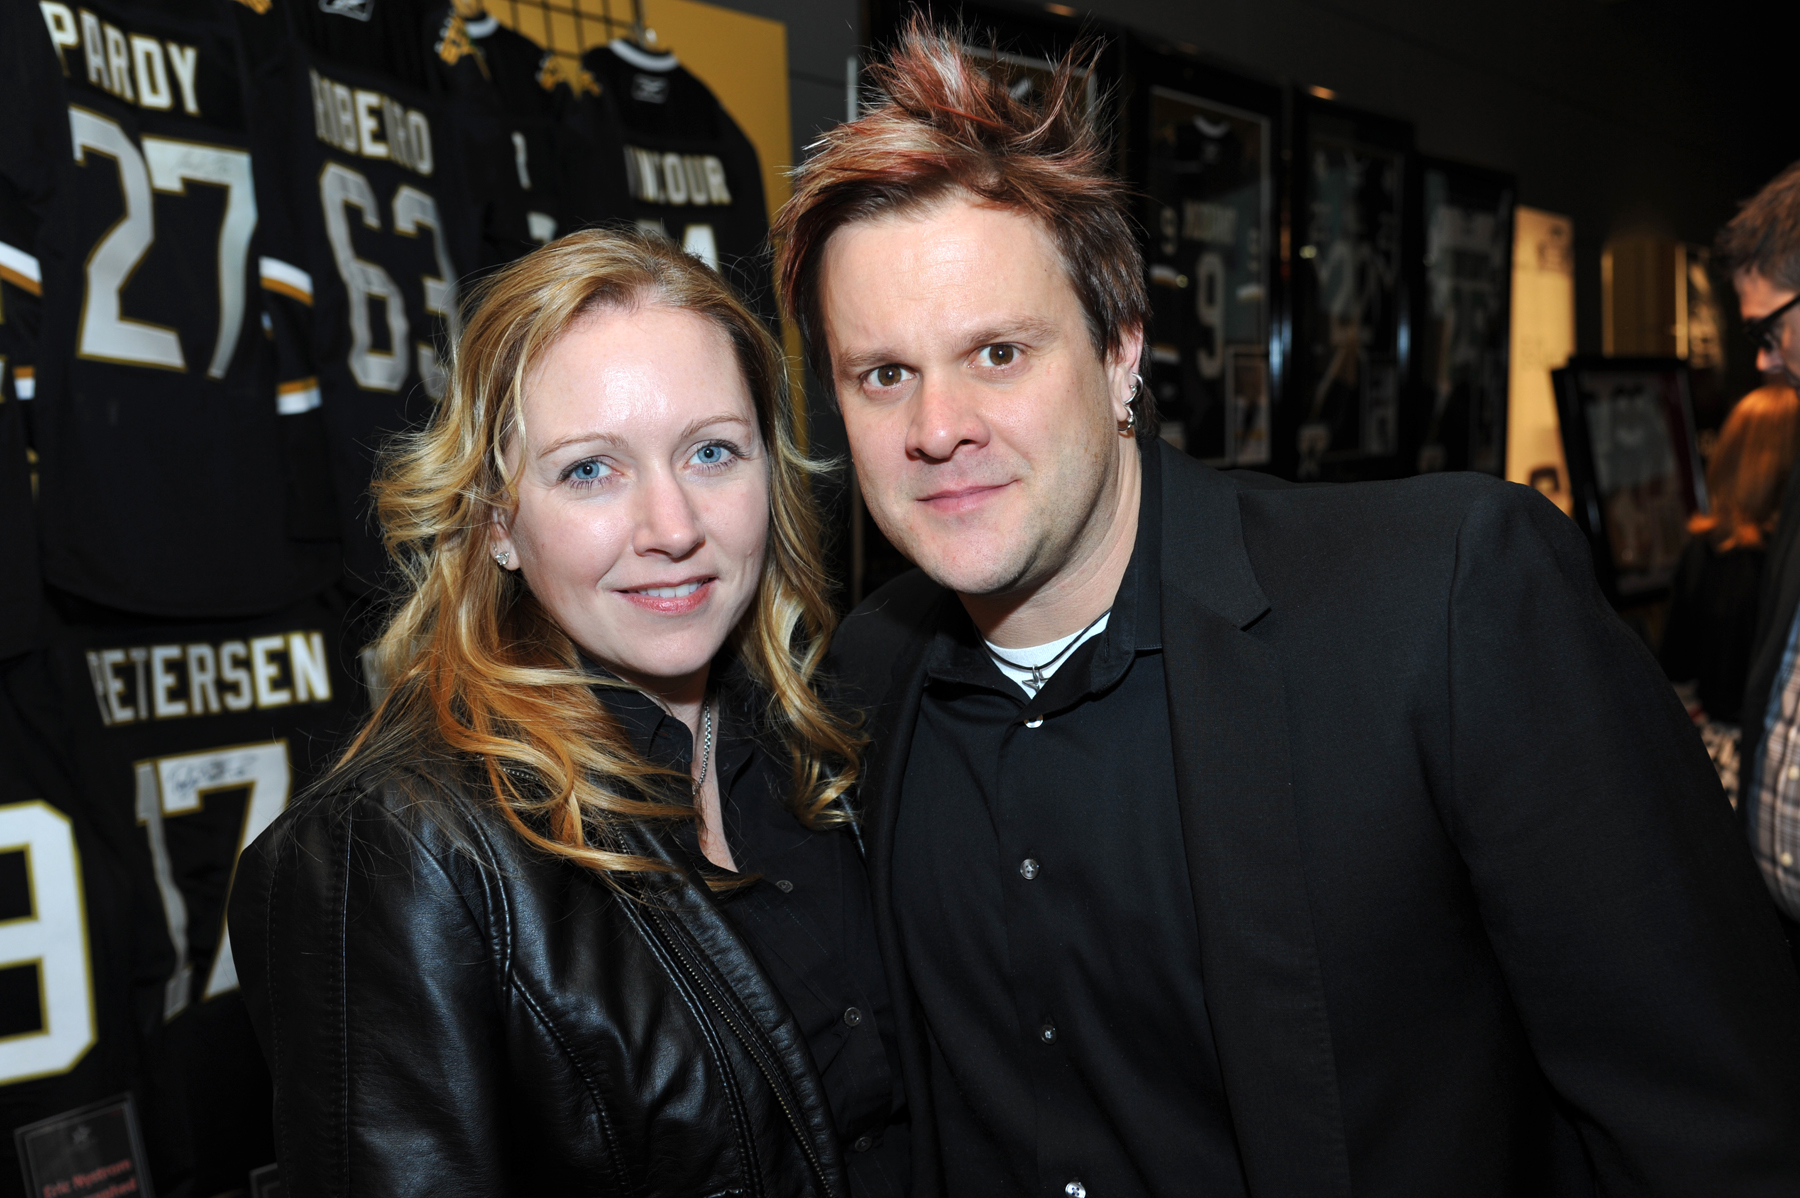 1547Melissa & Jaret Reddick, lead singer of Bowling for Soup